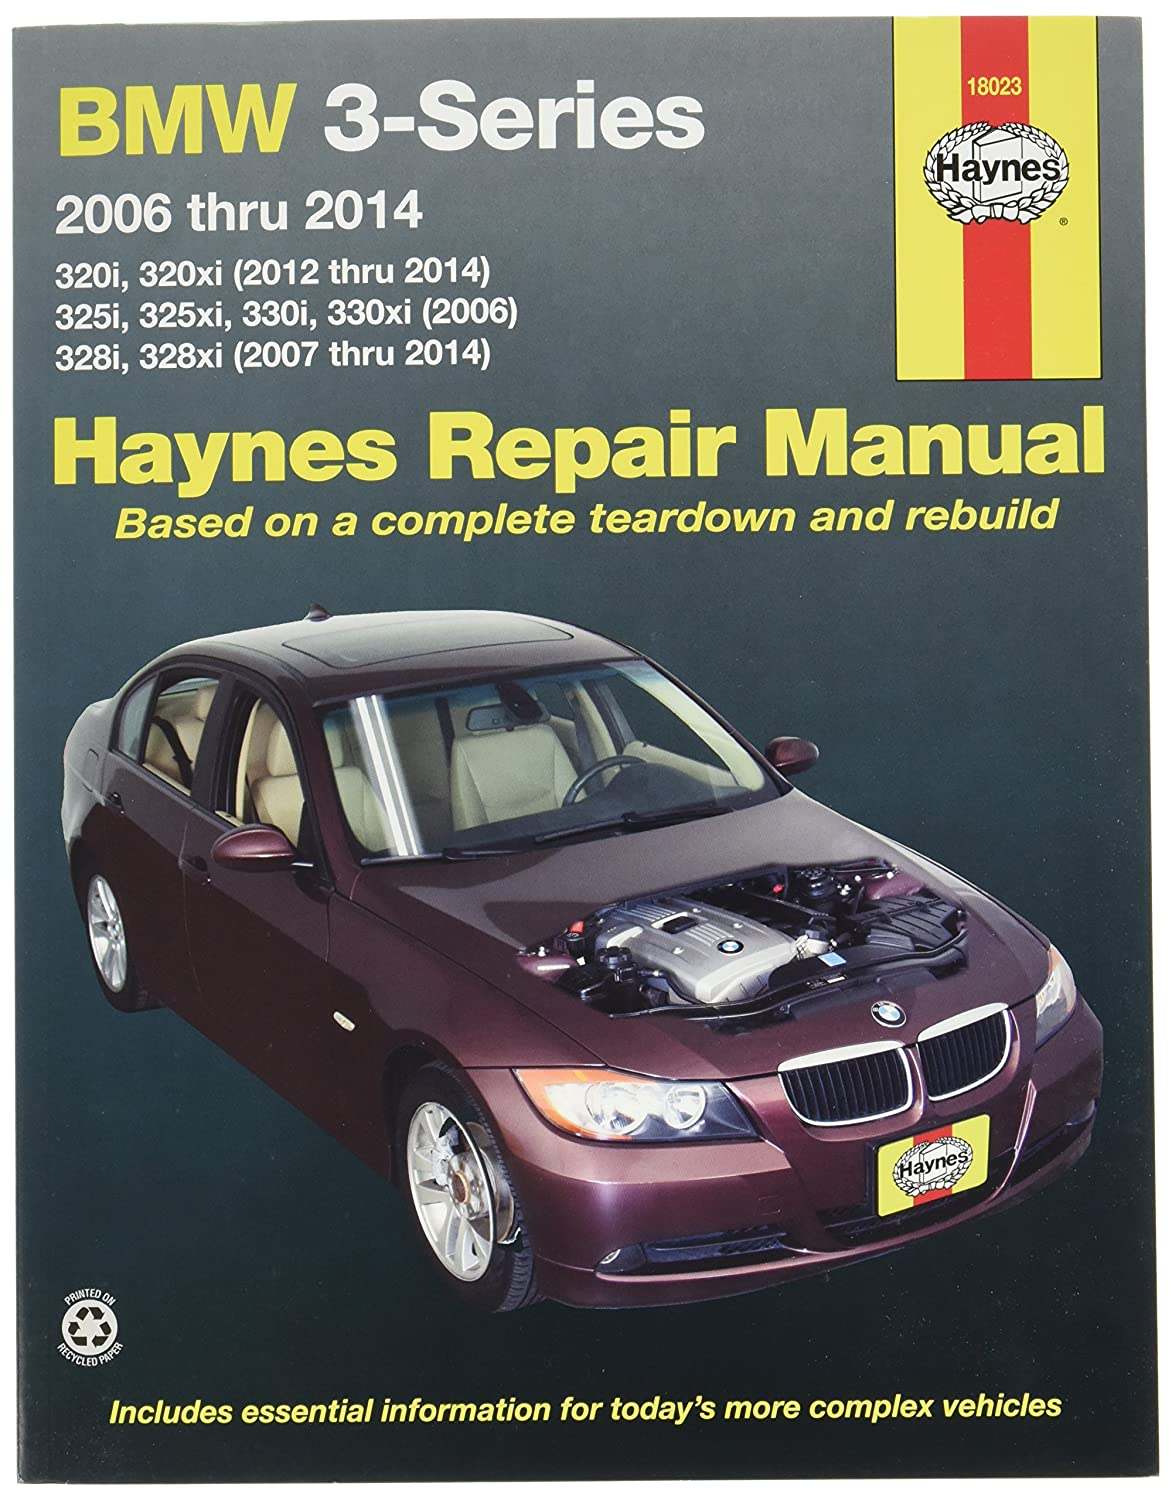 Amazon.com: Haynes Repair Manuals 18023 Technical Repair Manual: Automotive